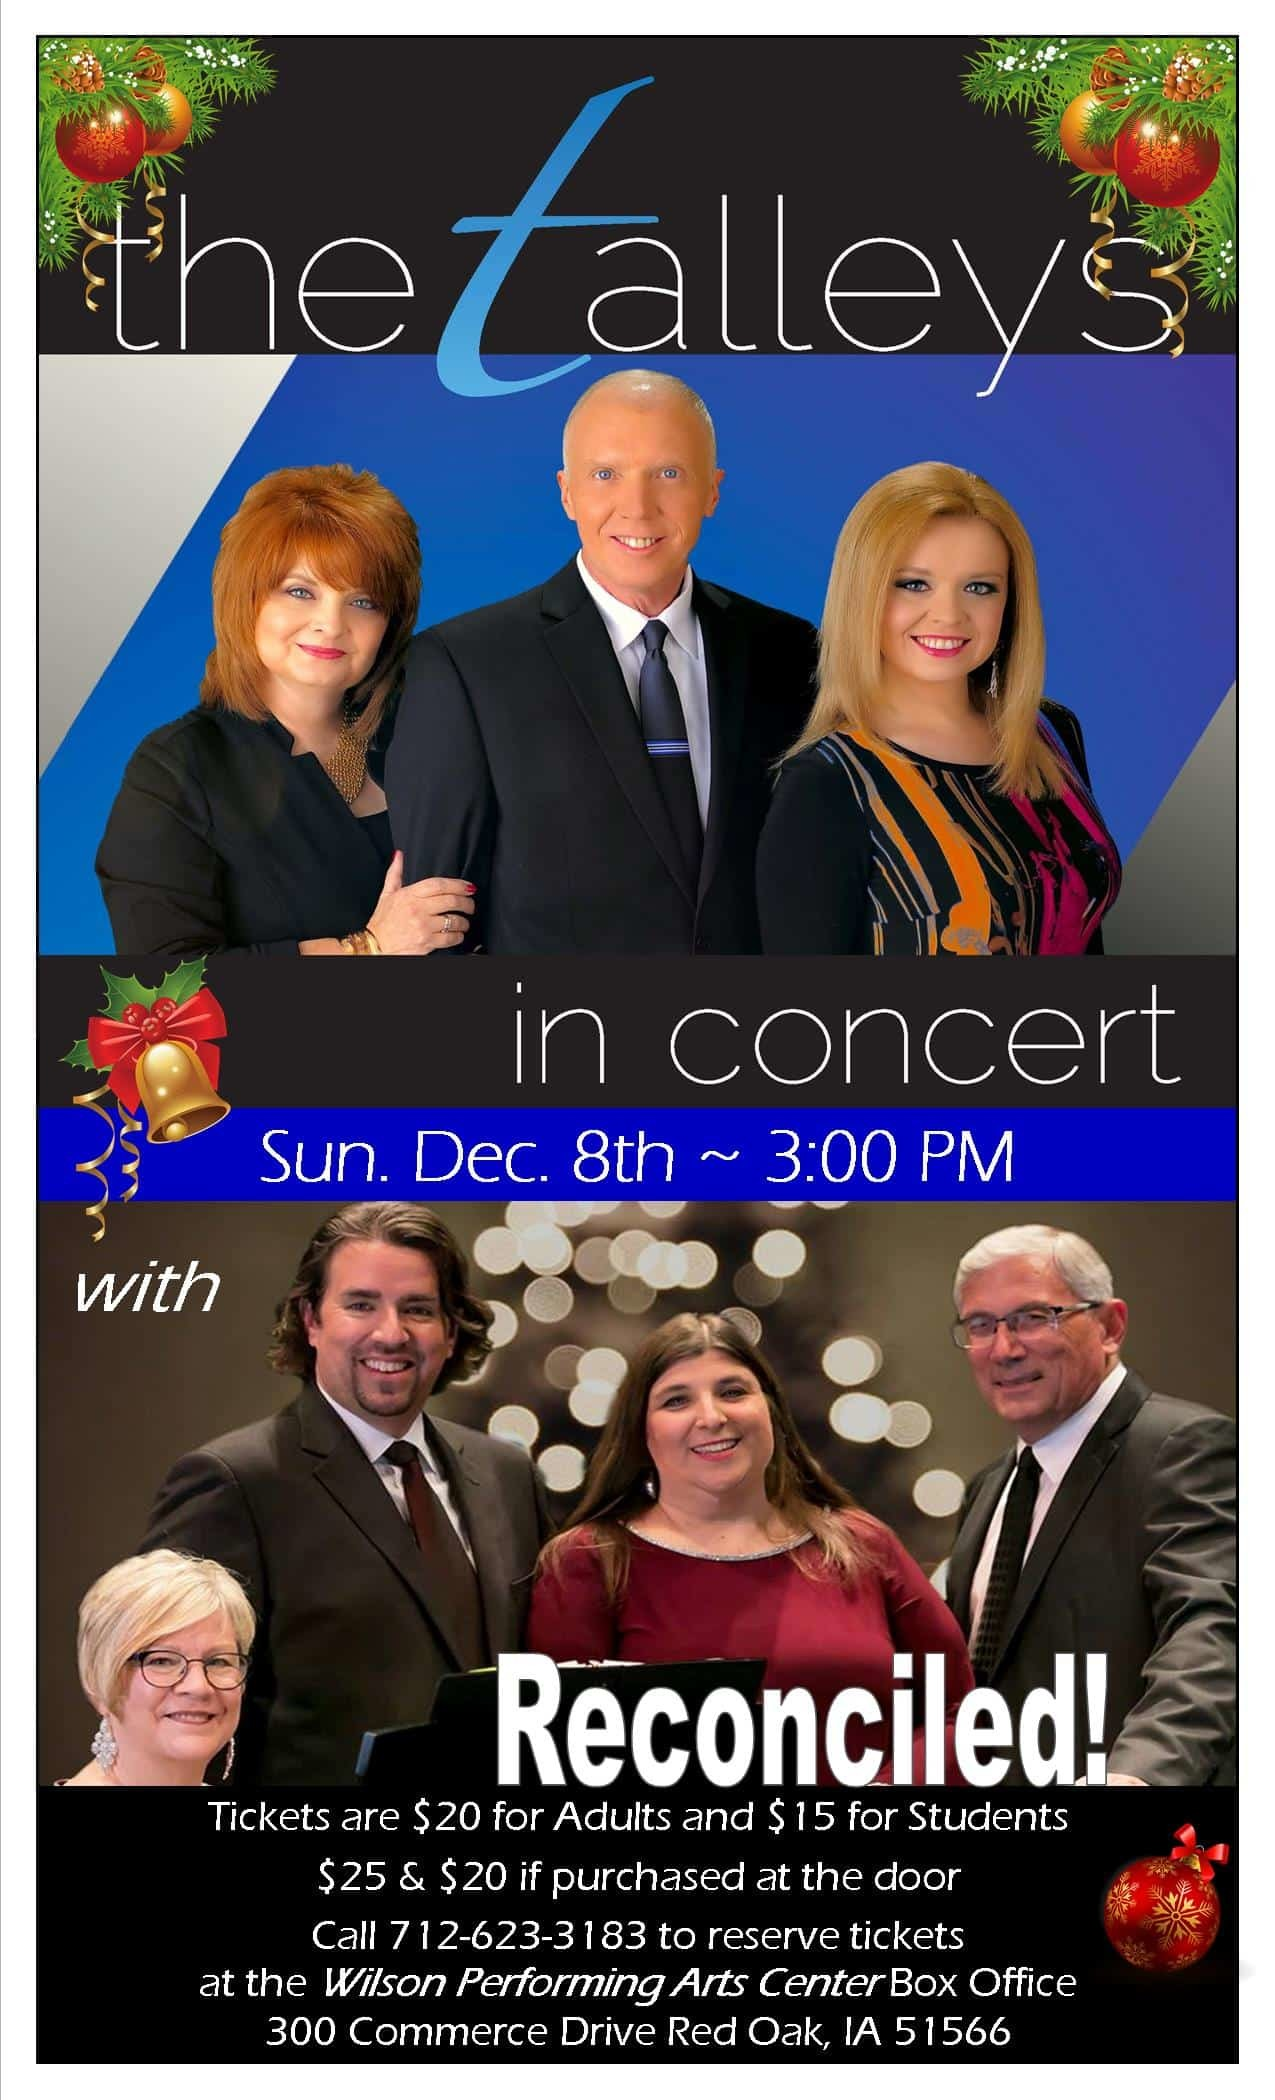 The Talleys in concert